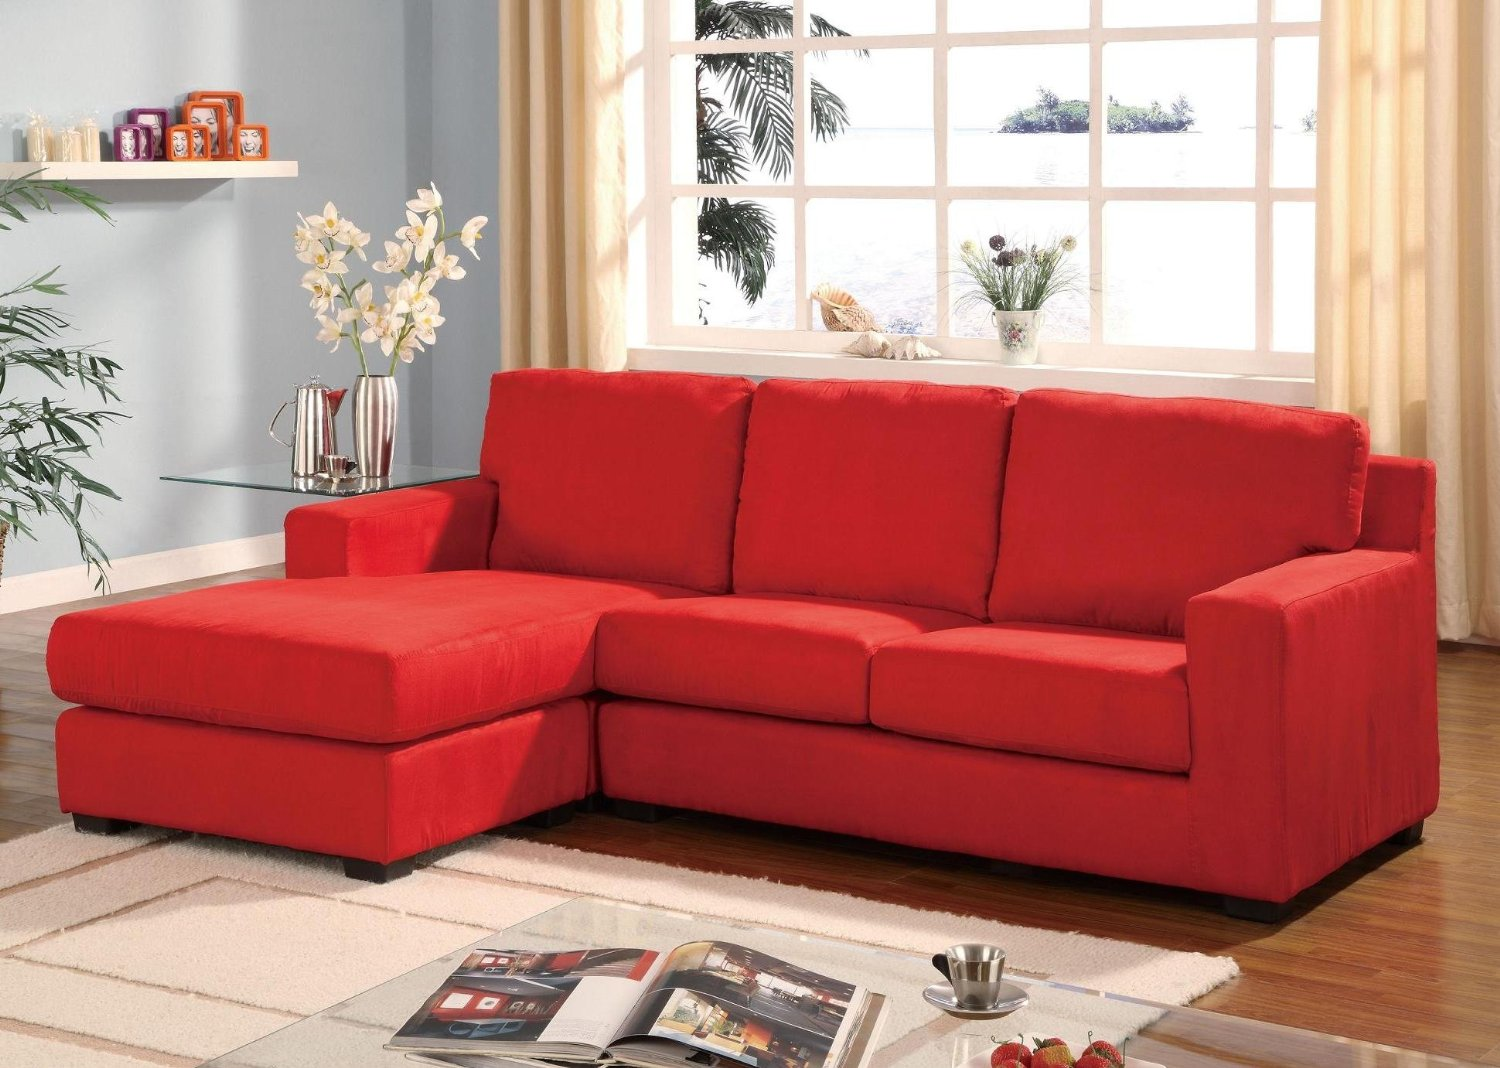 Buy Cheap Sofa: Cheap Sofa Beds